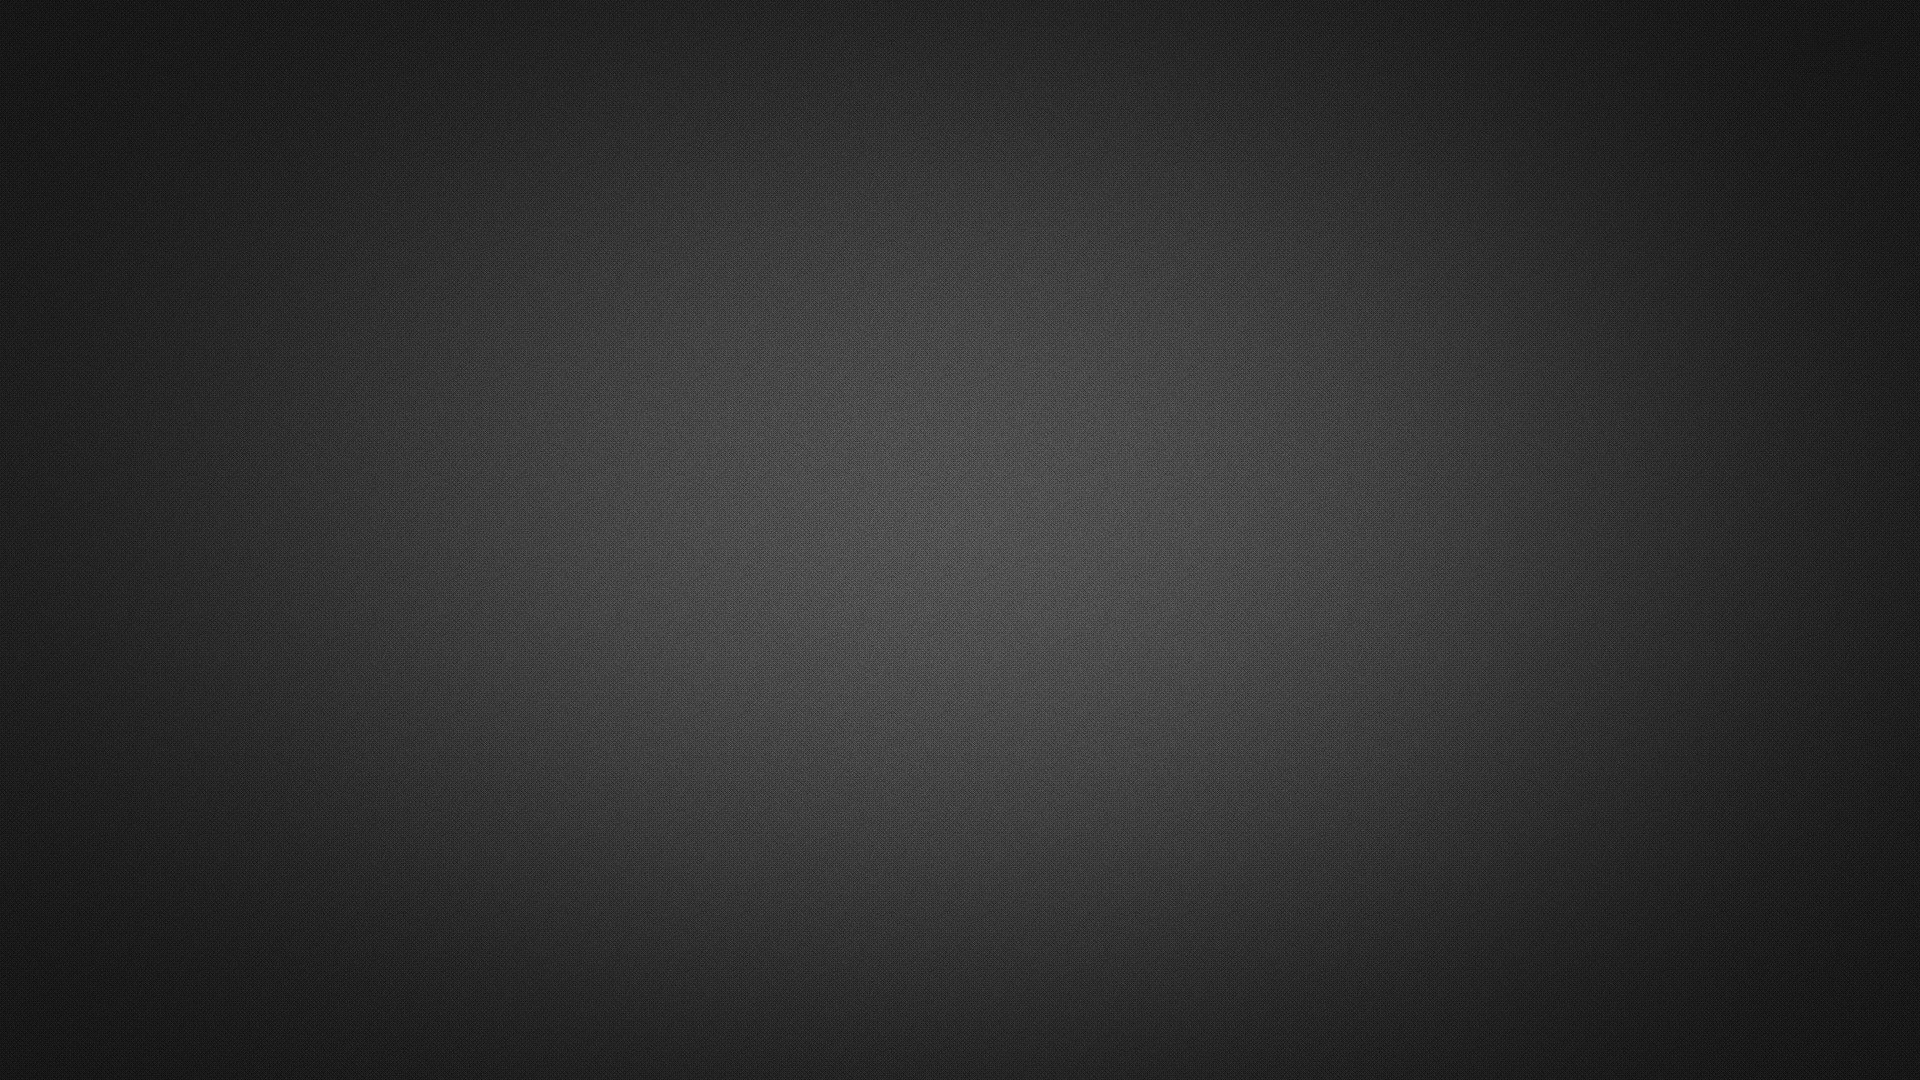 carbon fiber wallpaper 1920x1080 (73+ images)